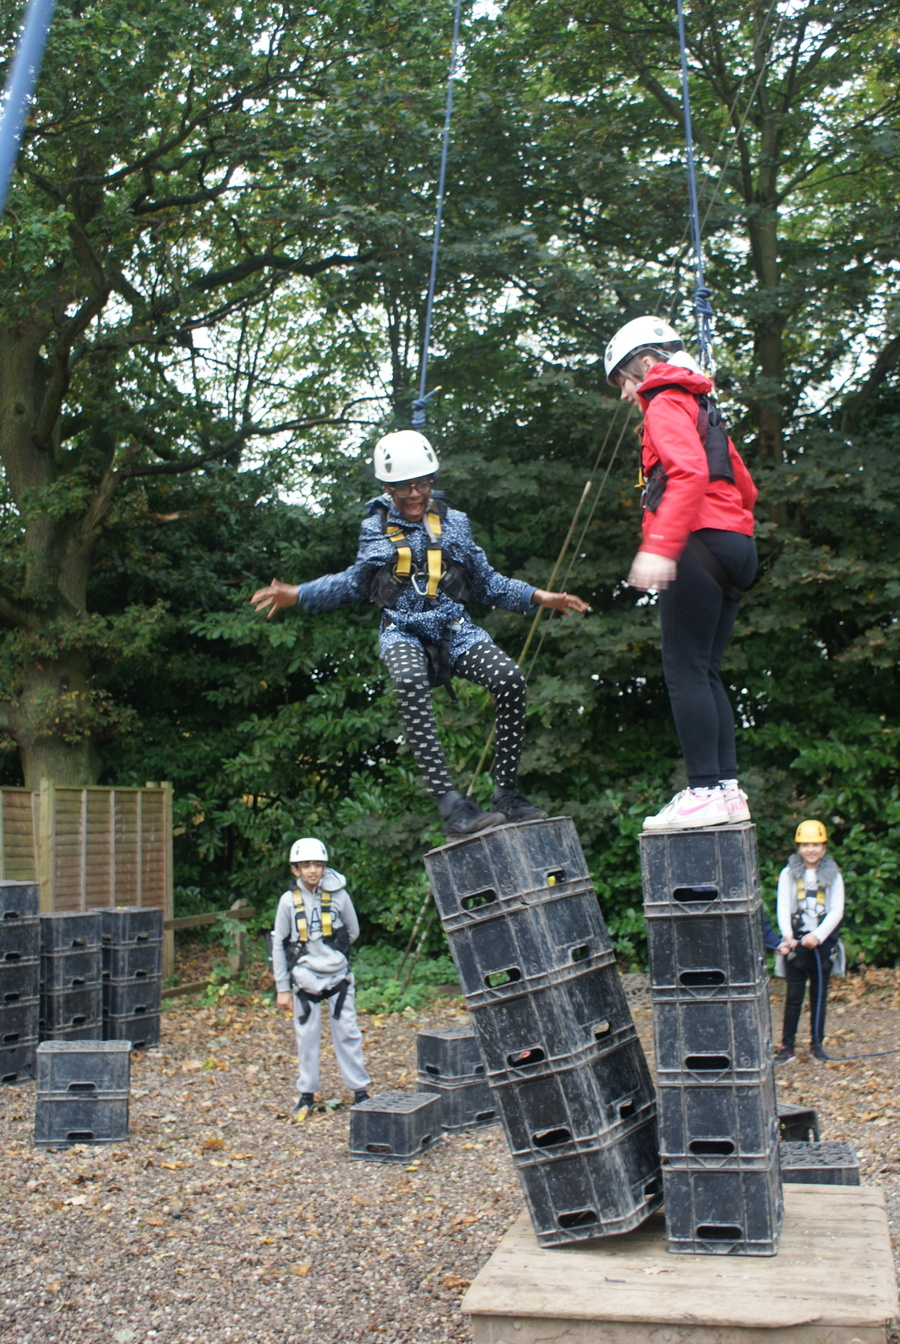 Crate stacking, stack the crates until they topple!